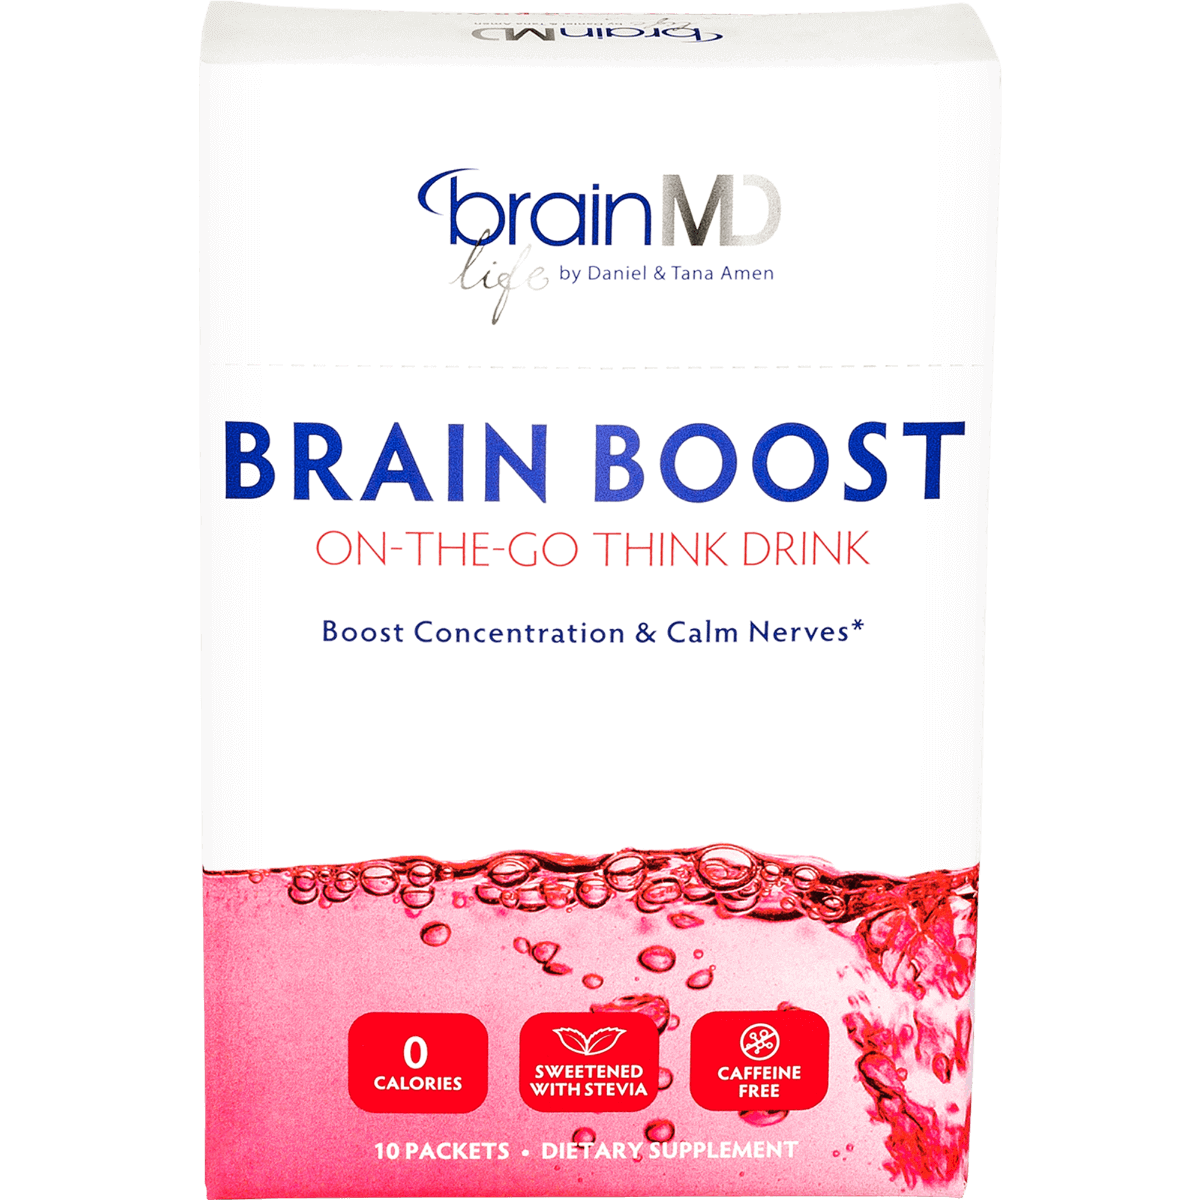 Brain Boost On-The-Go